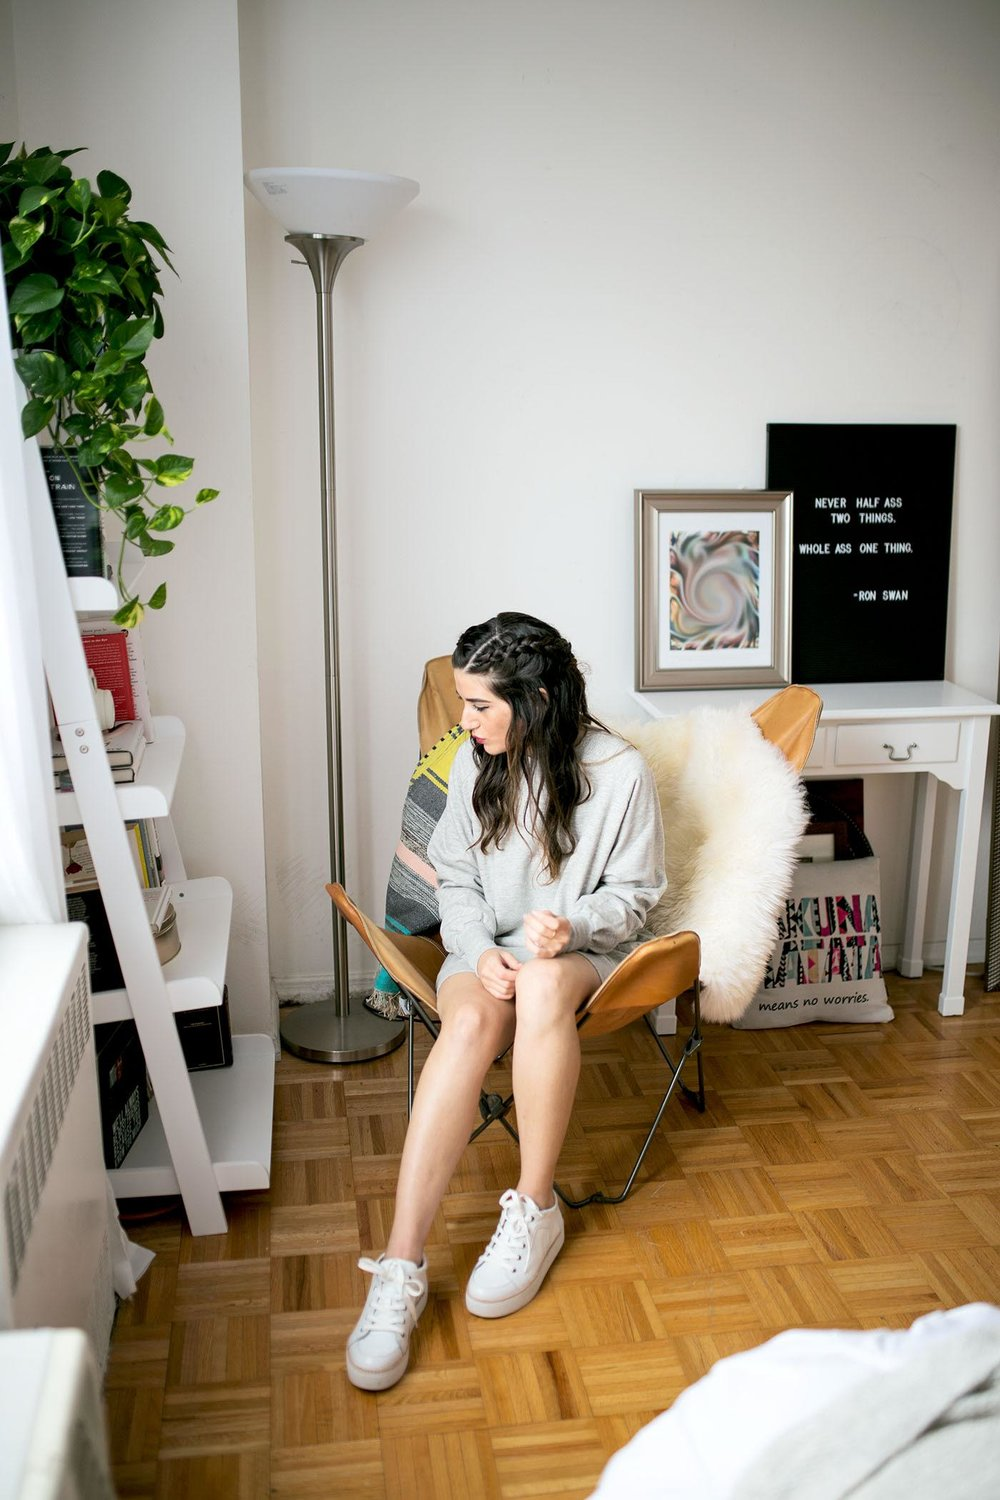 Sweatshirt Dress White Sneakers Louboutins & Love Fashion Blog Esther Santer NYC Street Style Blogger Outfit OOTD Trendy Grey Comftorable Cozy Sweater M4D3 Shoes Pretty Lounging New York City Zara Urban Outfitters Butterfly Chair Hair Girl RPZL Braid.jpg